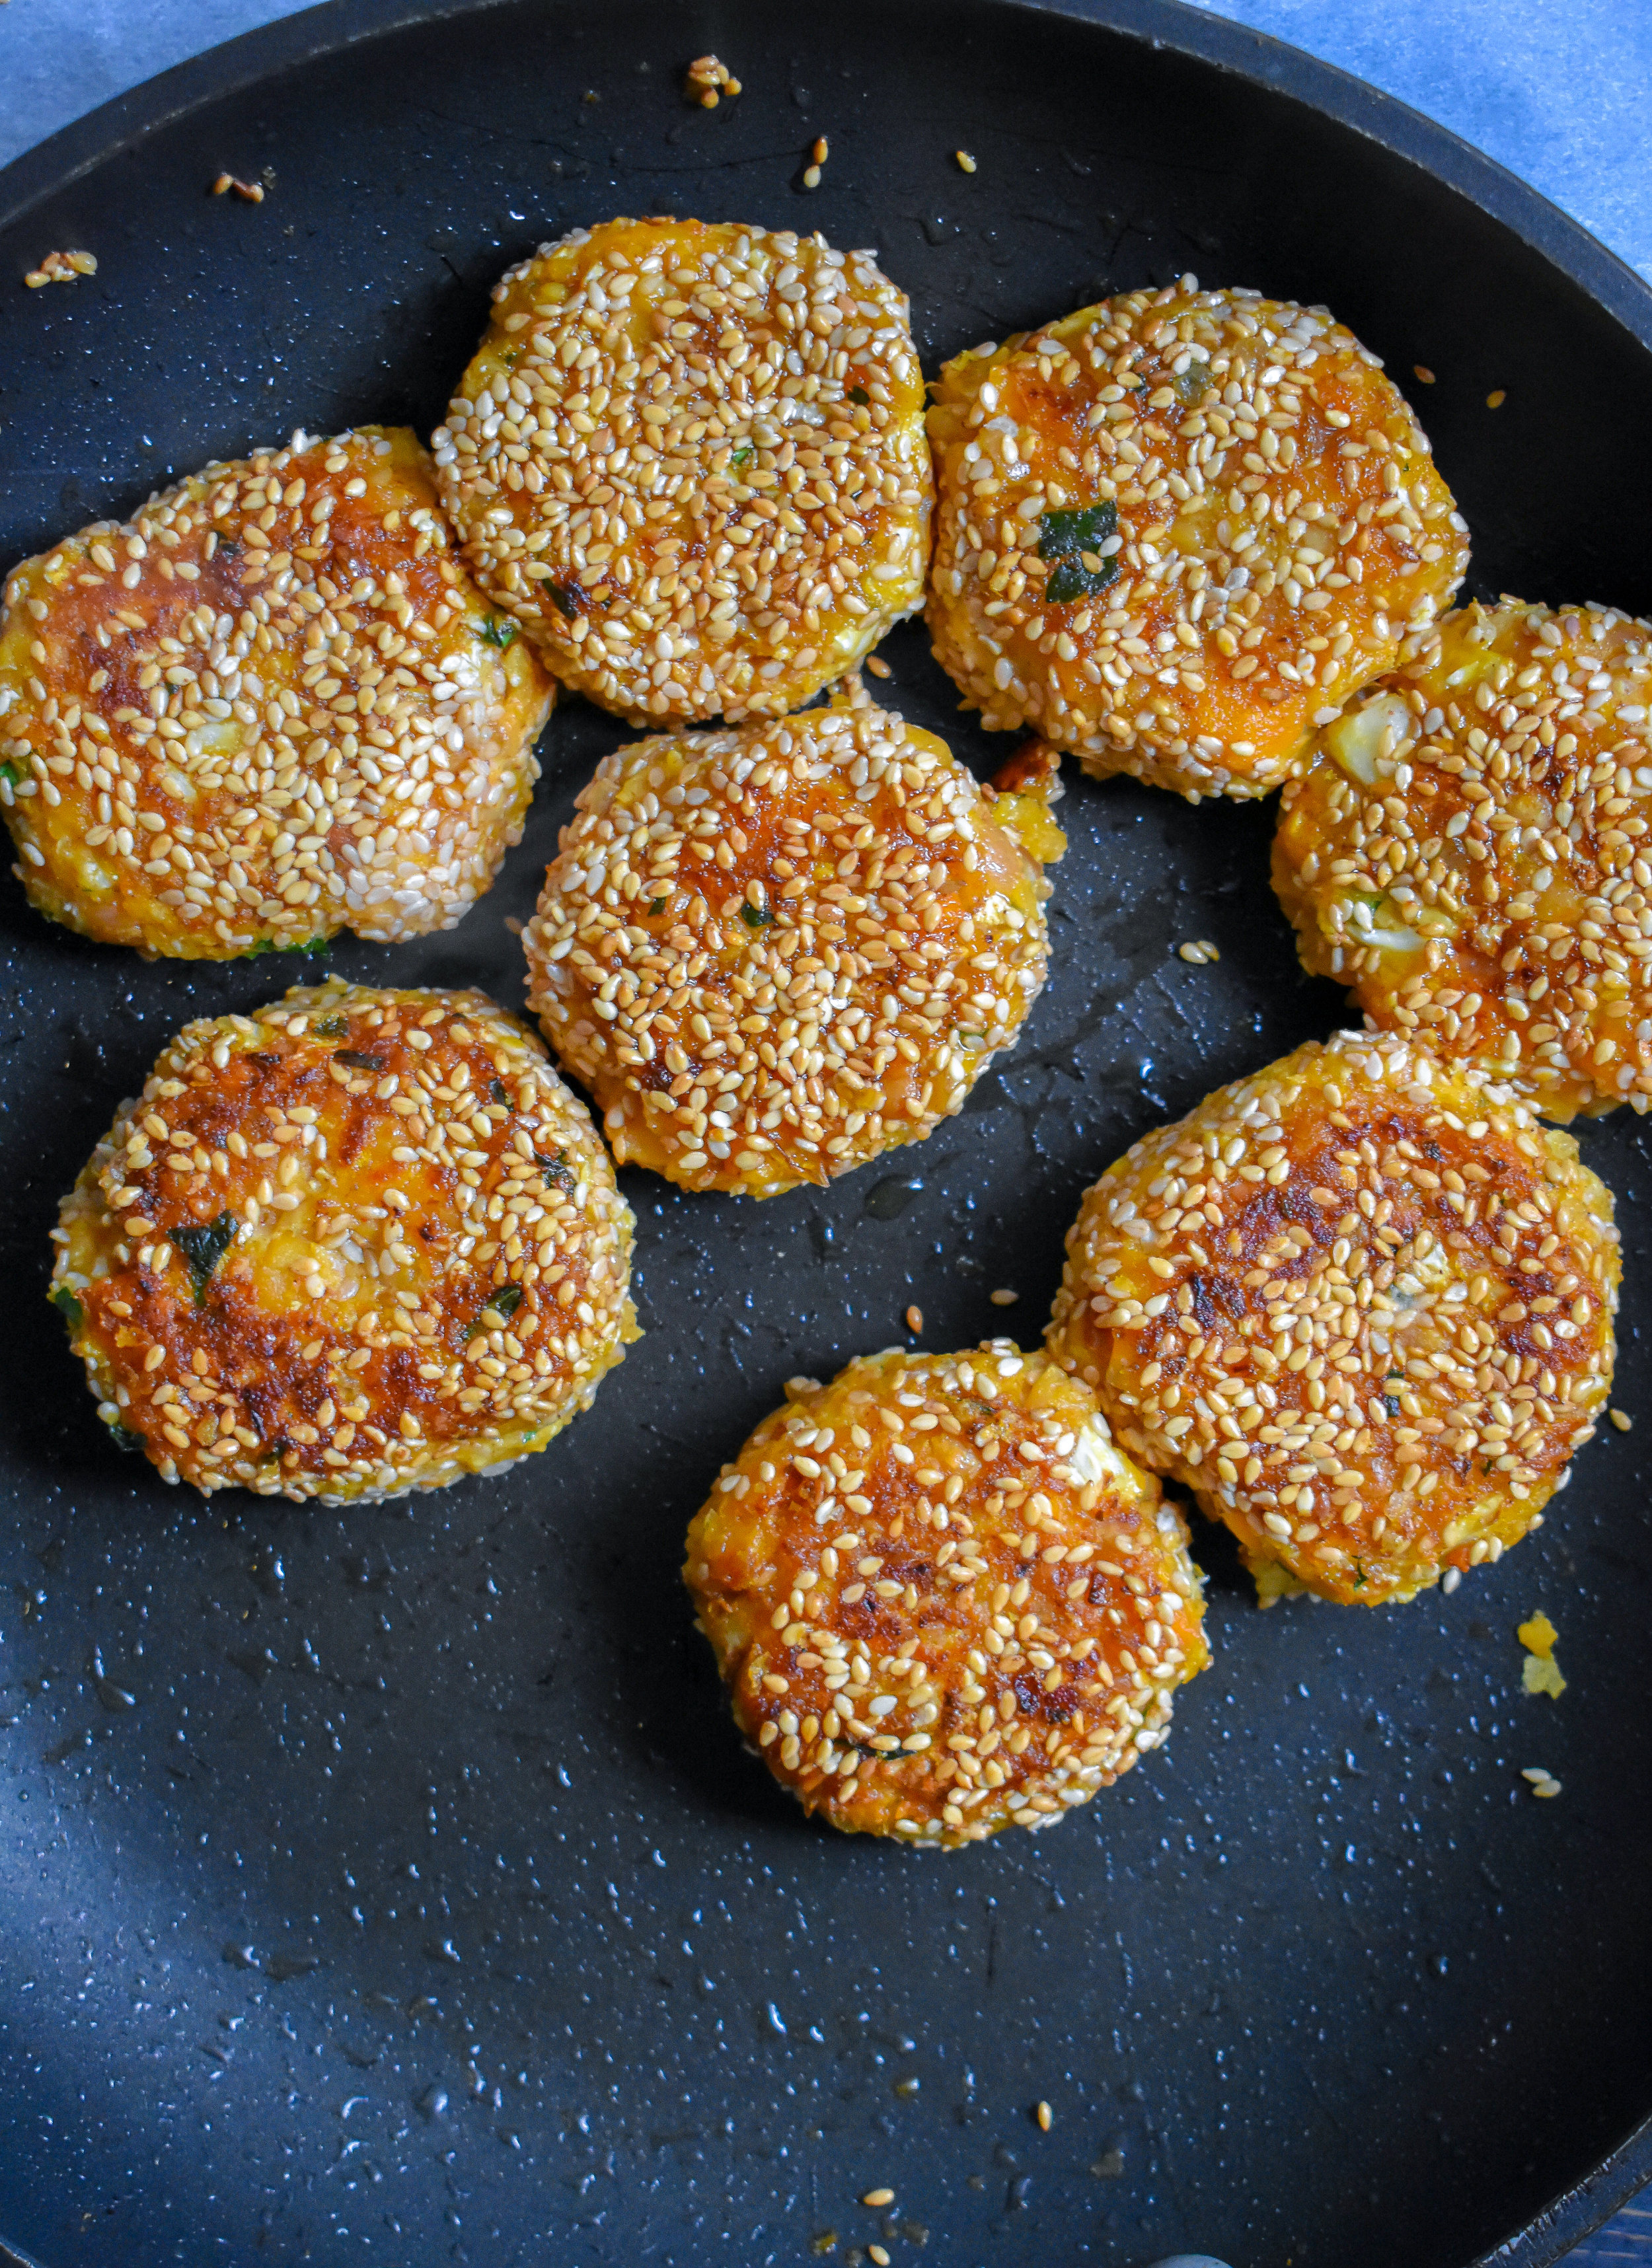 5. Add 7-8 falafel patties to a medium to large frying pan and cook over medium-high heat for 4-5 minutes until browned and crispy on each side.